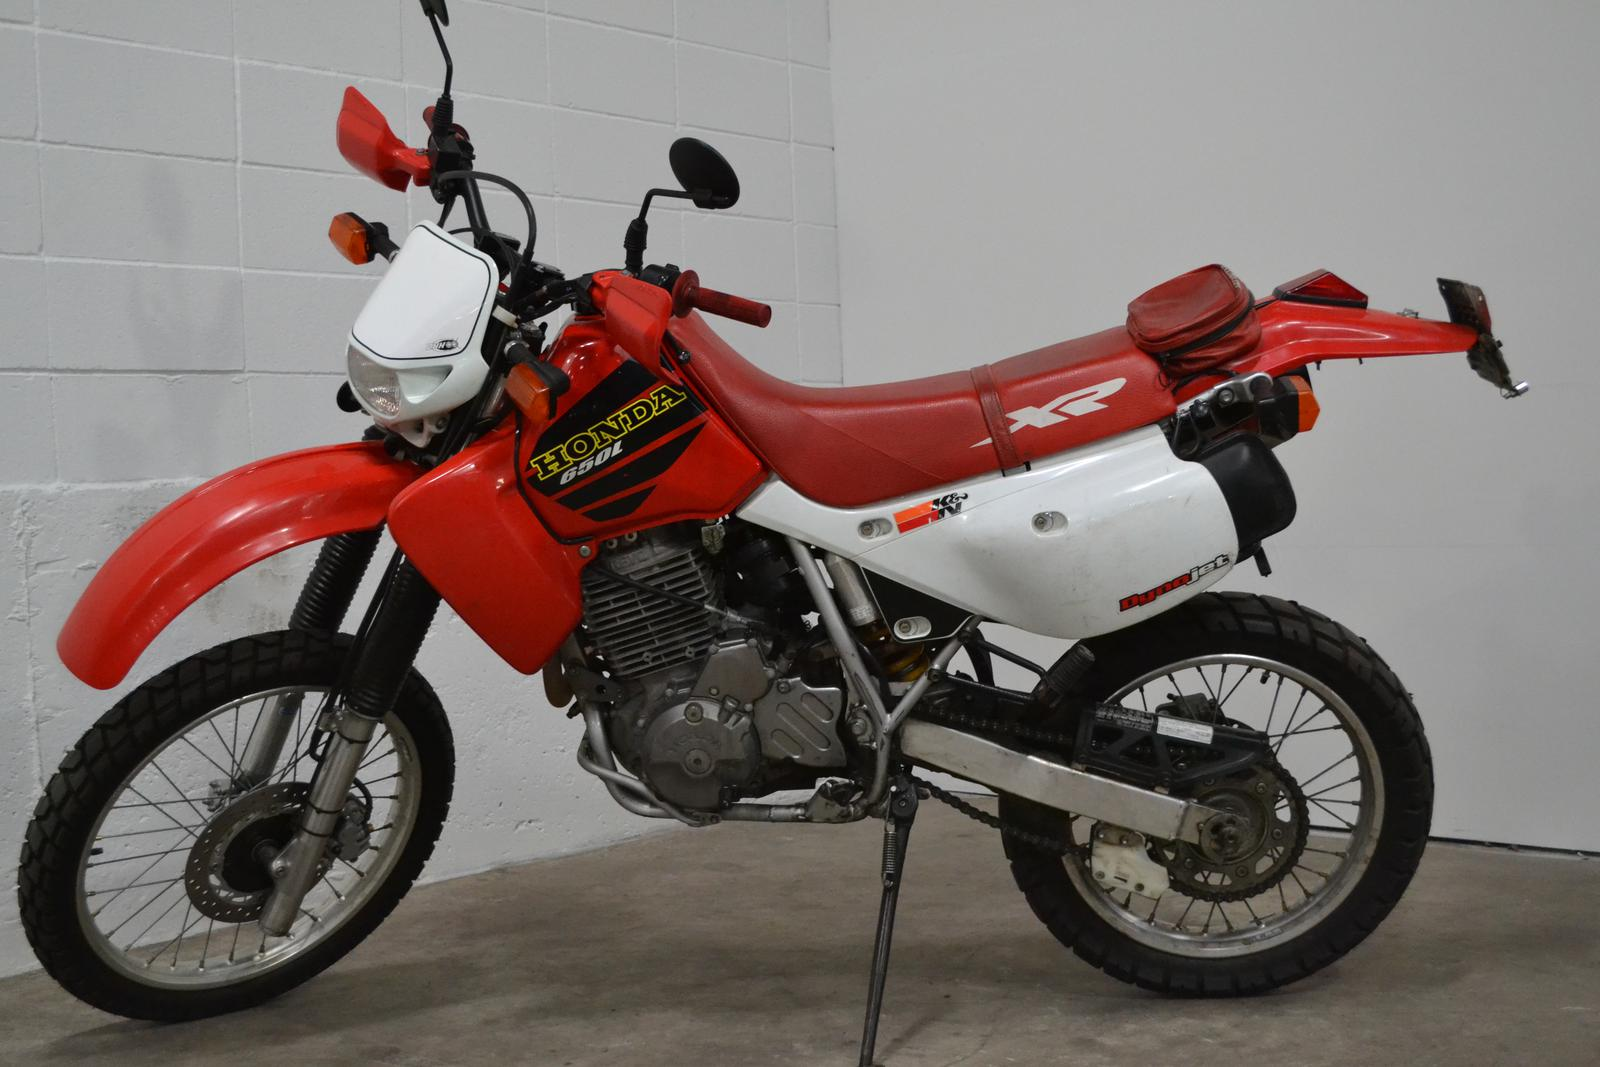 Honda Xr650l For Sale >> 2001 Honda Xr650l Motorcycle From Foxboro Ma Today Sale